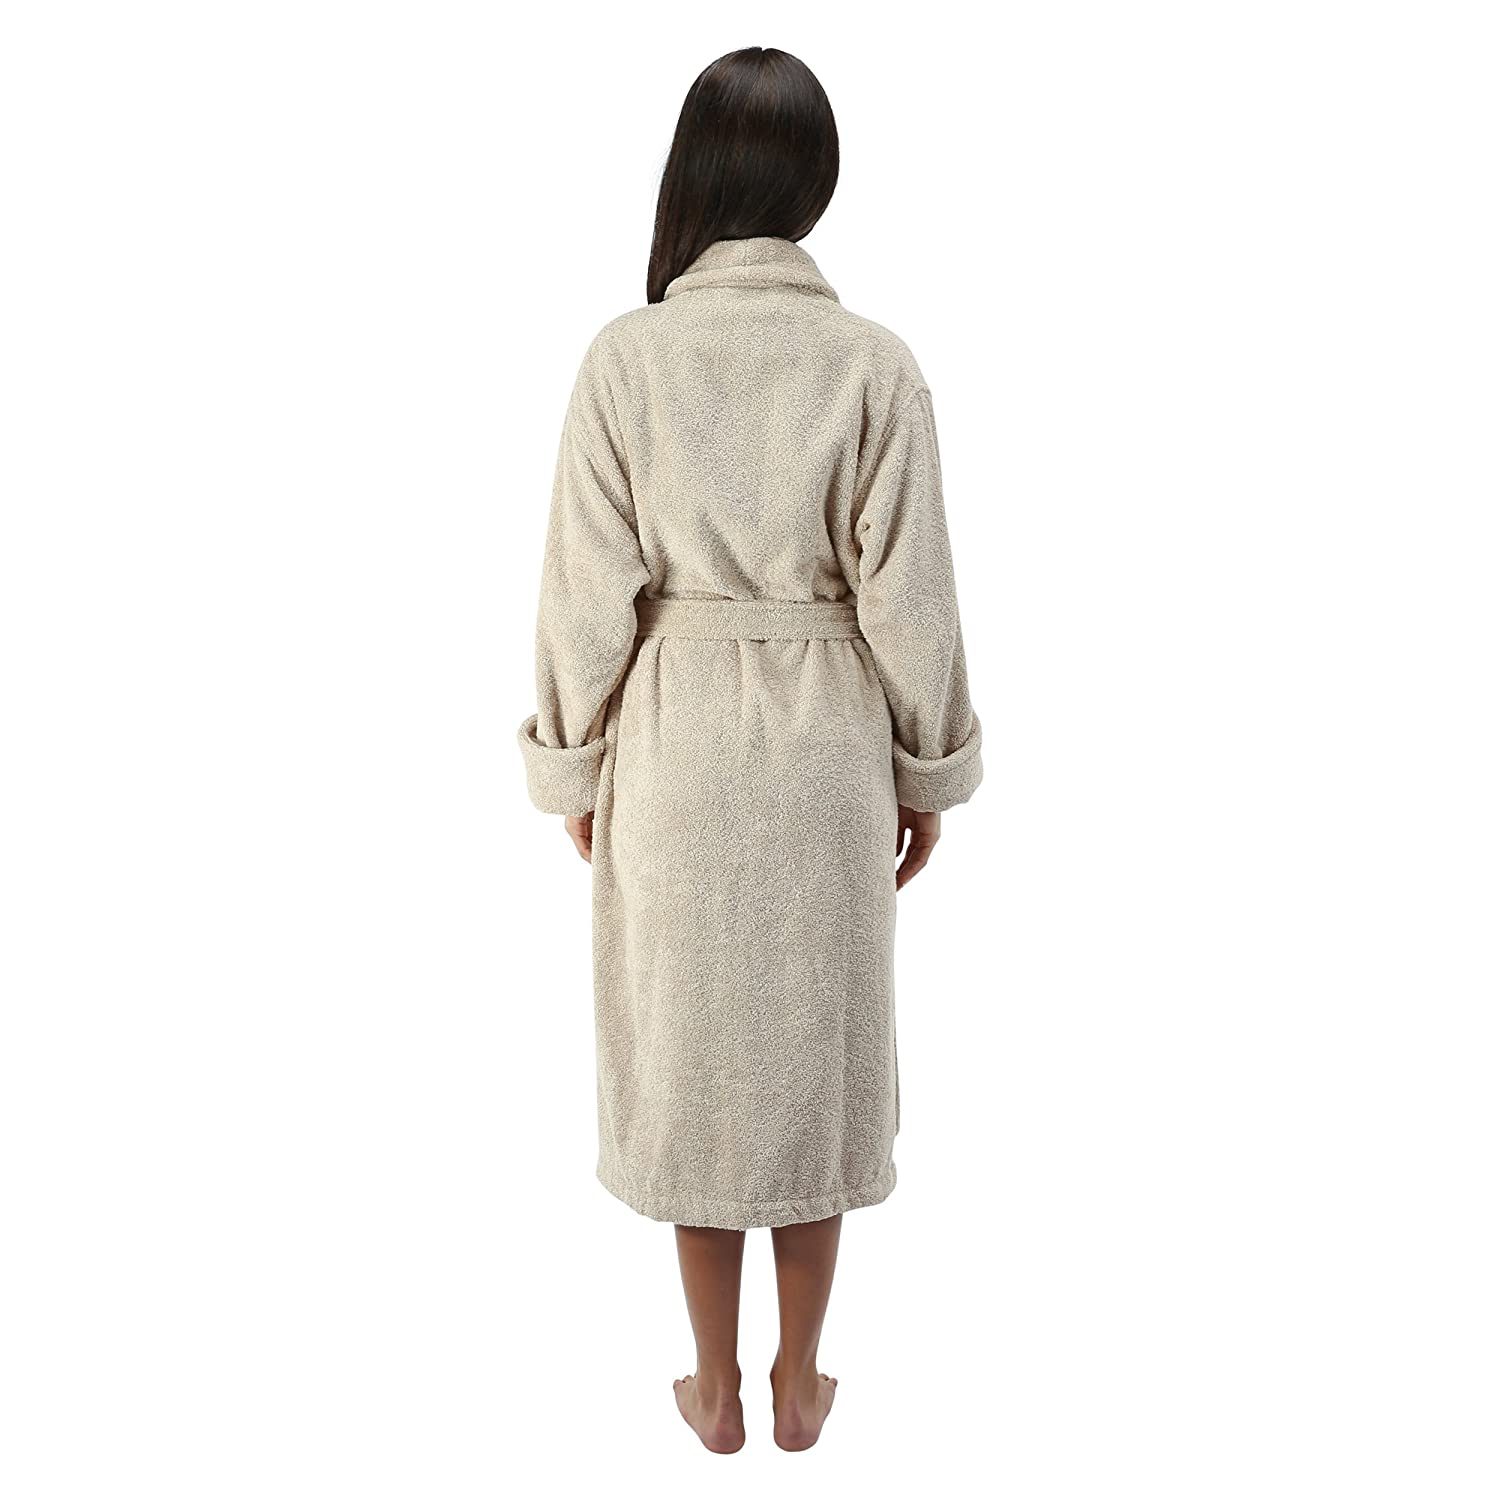 Comfy Robes Women s 16 oz. Turkish Terry Bathrobe at Amazon Women s  Clothing store  23e13f1a1